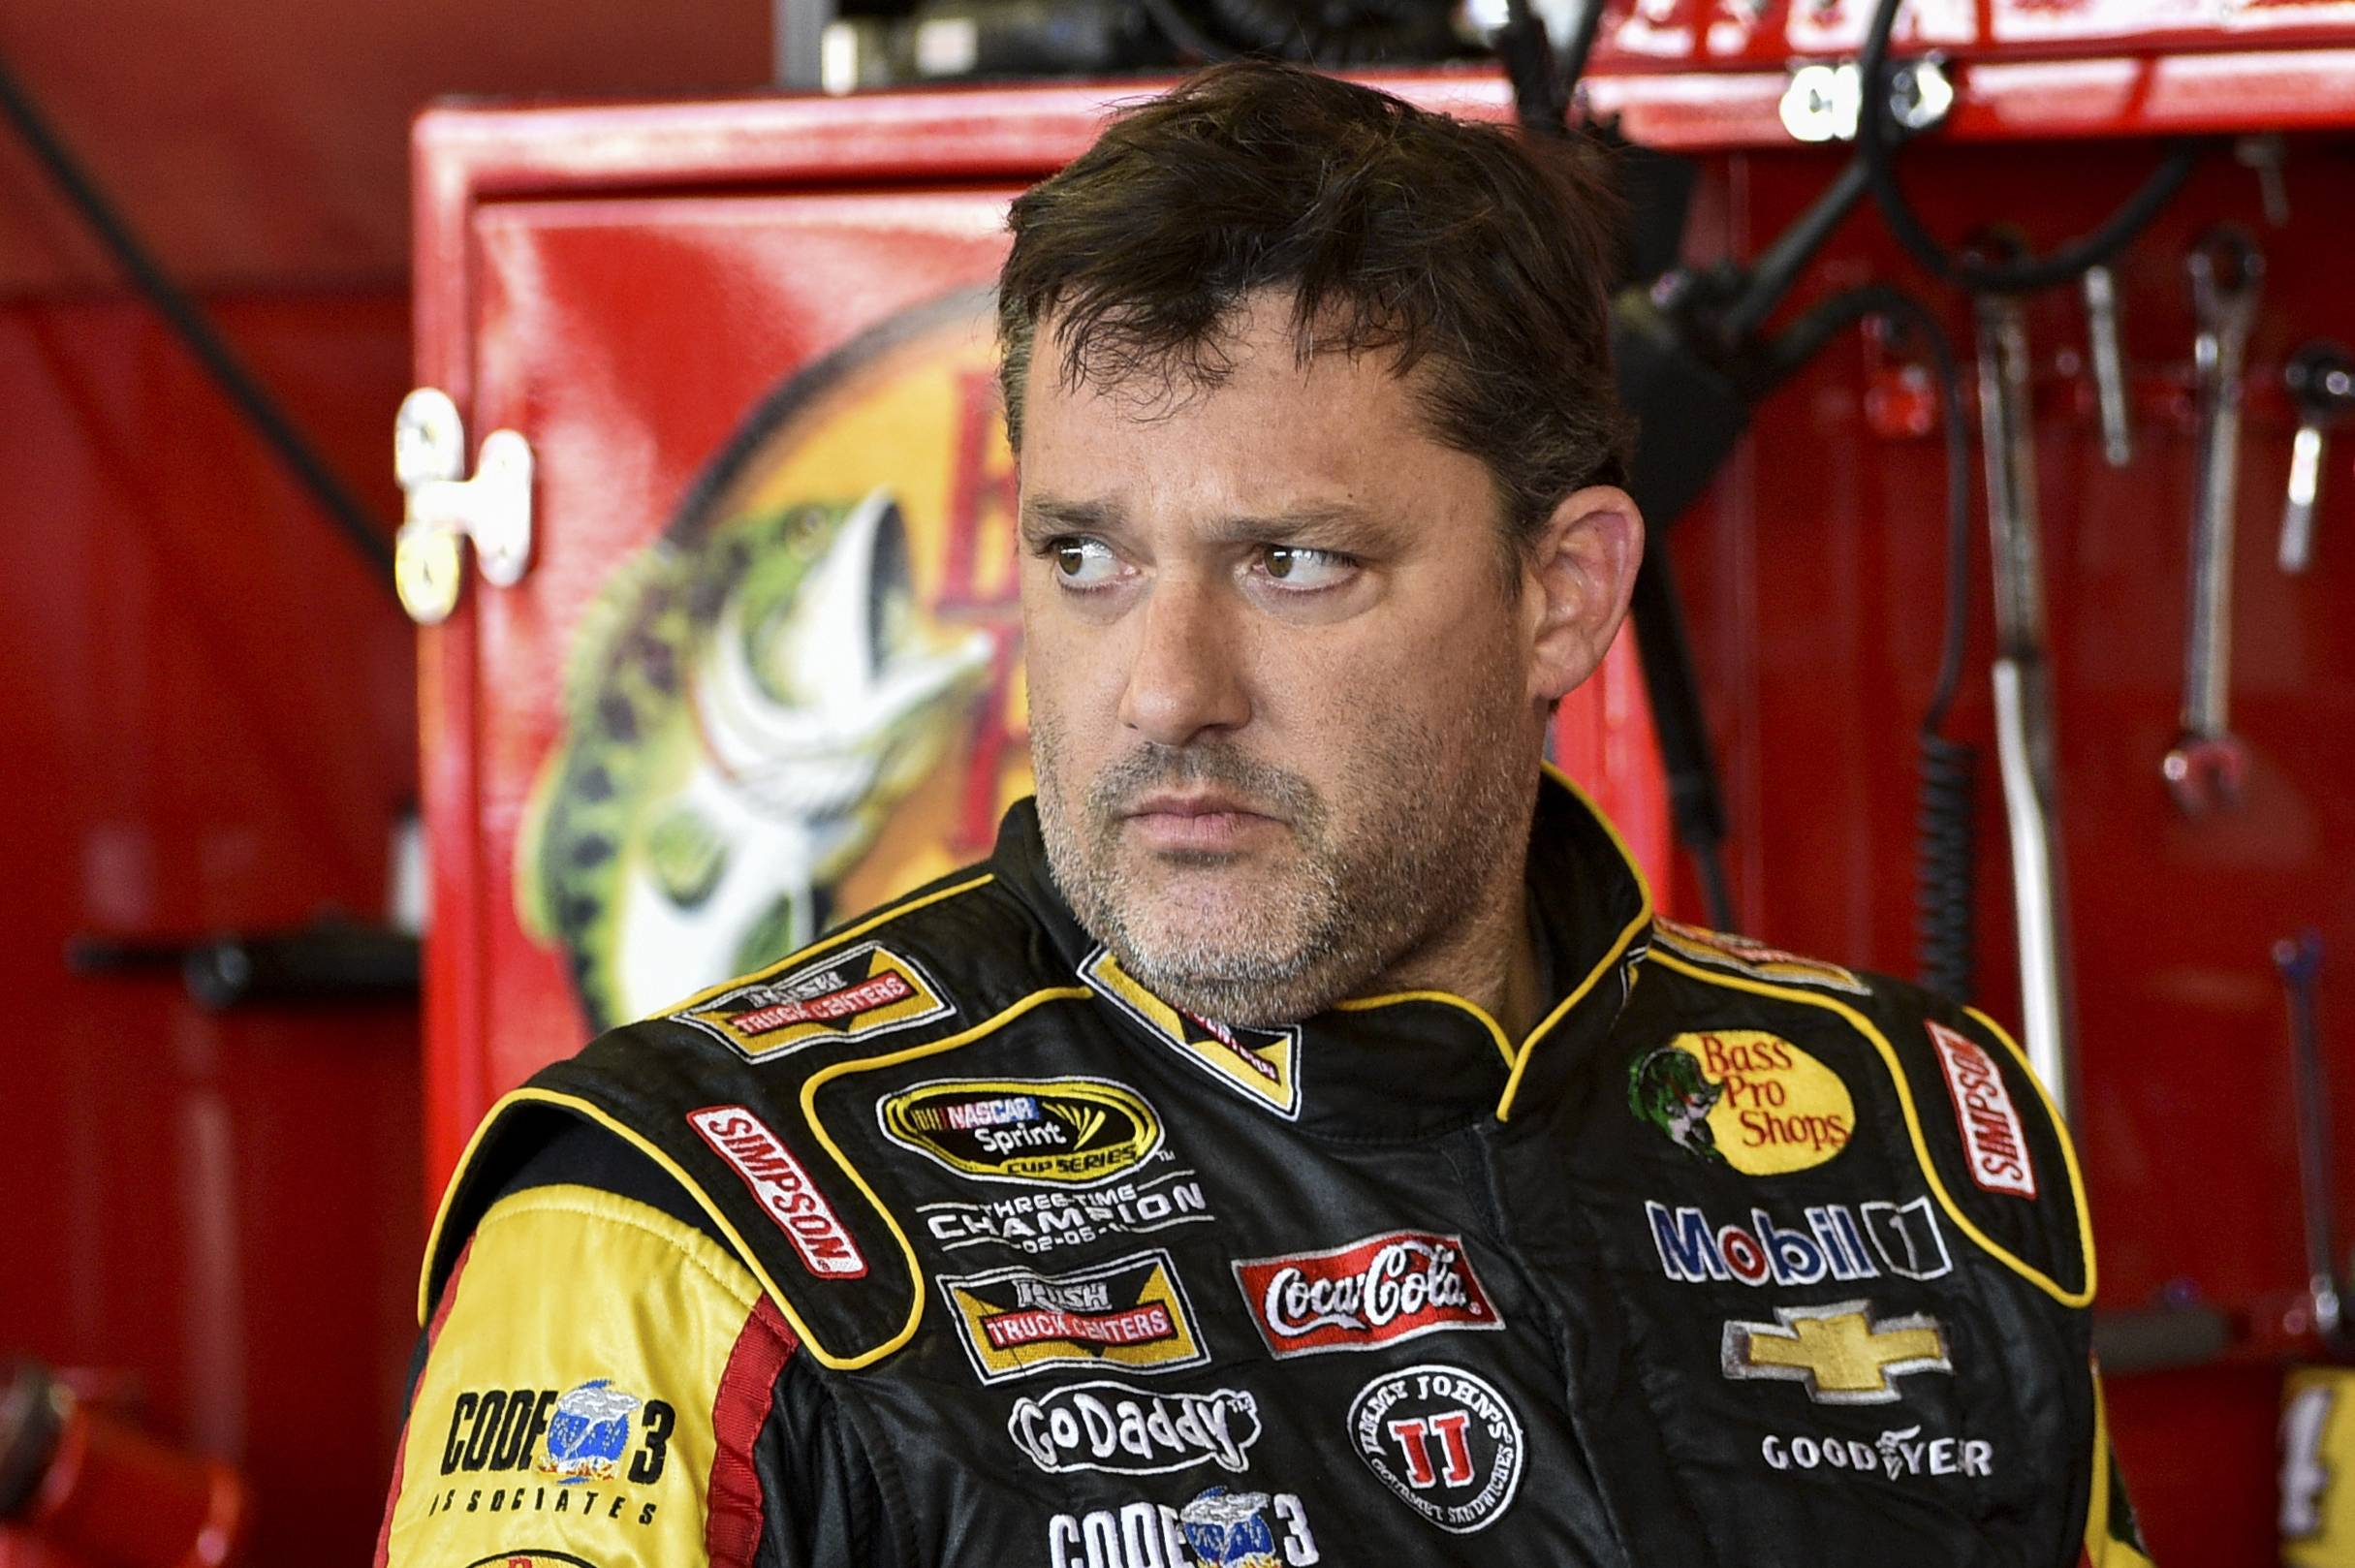 "In this Friday, Aug. 8, 2014, photograph, Tony Stewart stands in the garage area after a practice session for Sunday's NASCAR Sprint Cup Series auto race at Watkins Glen International, in Watkins Glen N.Y. Stewart struck and killed Kevin Ward Jr., 20, a sprint car driver who had climbed from his car and was on the track trying to confront Stewart during a race at Canandaigua Motorsports Park in upstate New York on Saturday night. Ontario County Sheriff Philip Povero said his department's investigation is not criminal and that Stewart was ""fully cooperative"" and appeared ""very upset"" over what had happened."